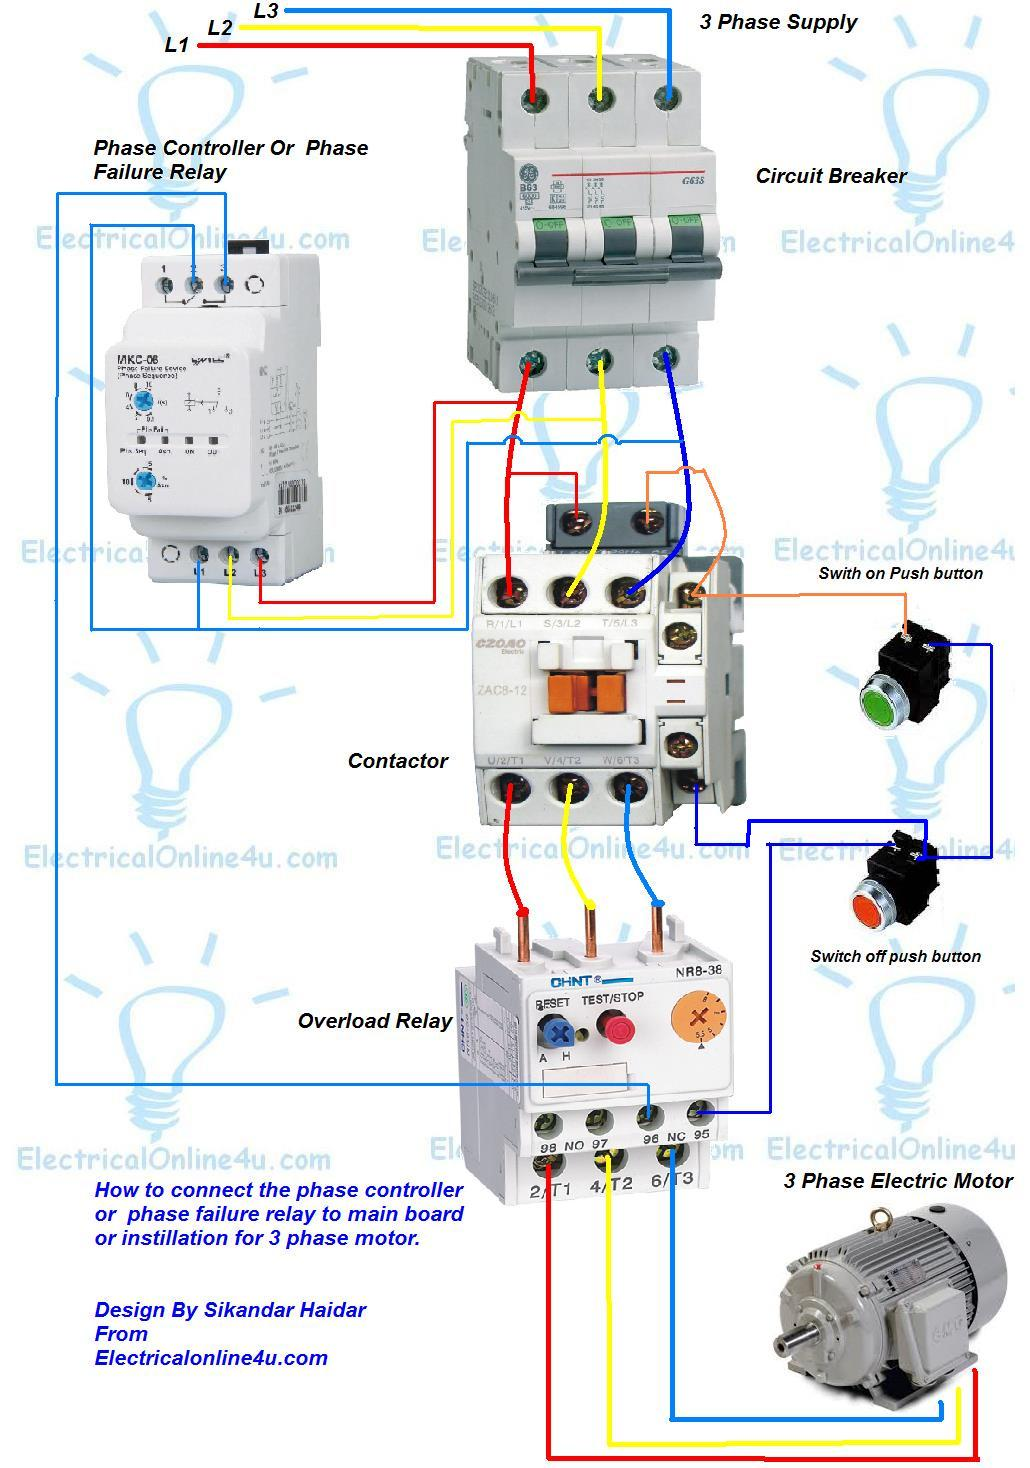 Phase%2Bfailure%2Brelay%2B %2Bphase%2Bcontroller%2Binstilaion%2Bin%2B3%2Bphase%2BMain%2Bboard%2Bor%2Bfor%2B3%2Bphase%2Bmotor phase controller wiring phase failure relay diagram electrical single phase contactor wiring diagram at soozxer.org